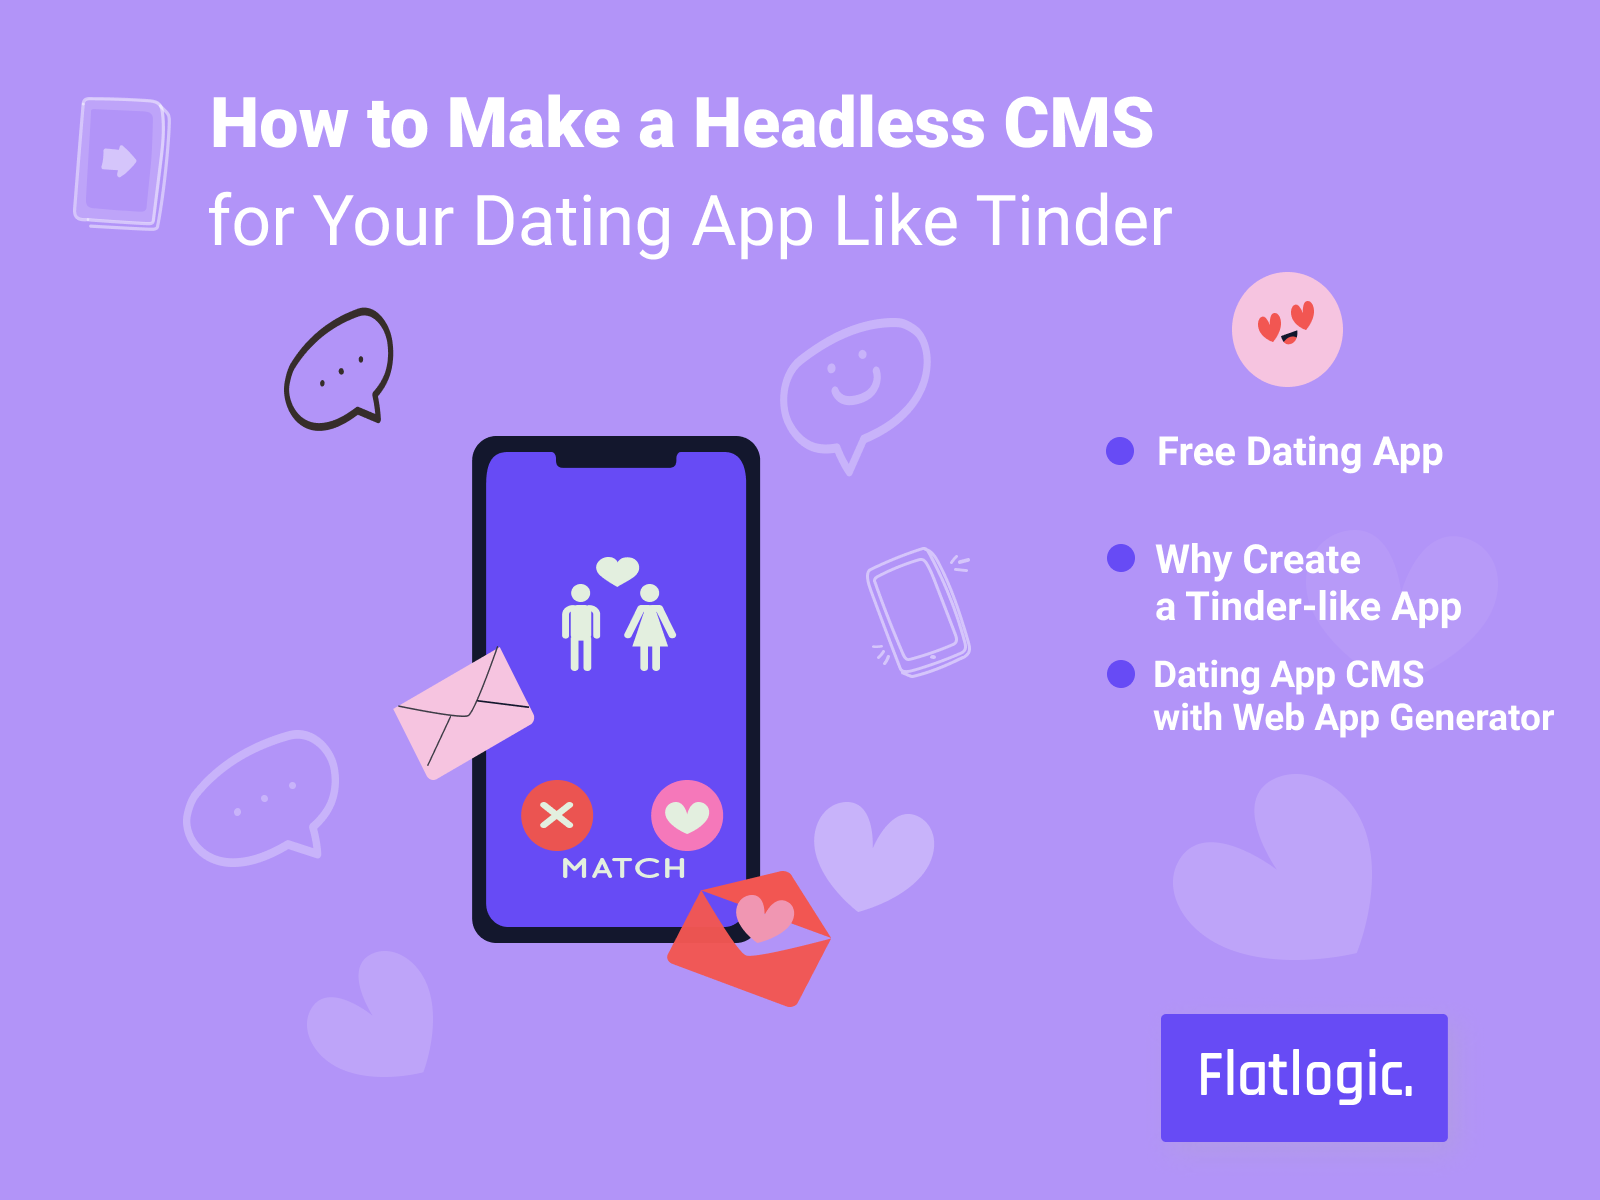 How to Make a Headless CMS for Dating App Like Tinder